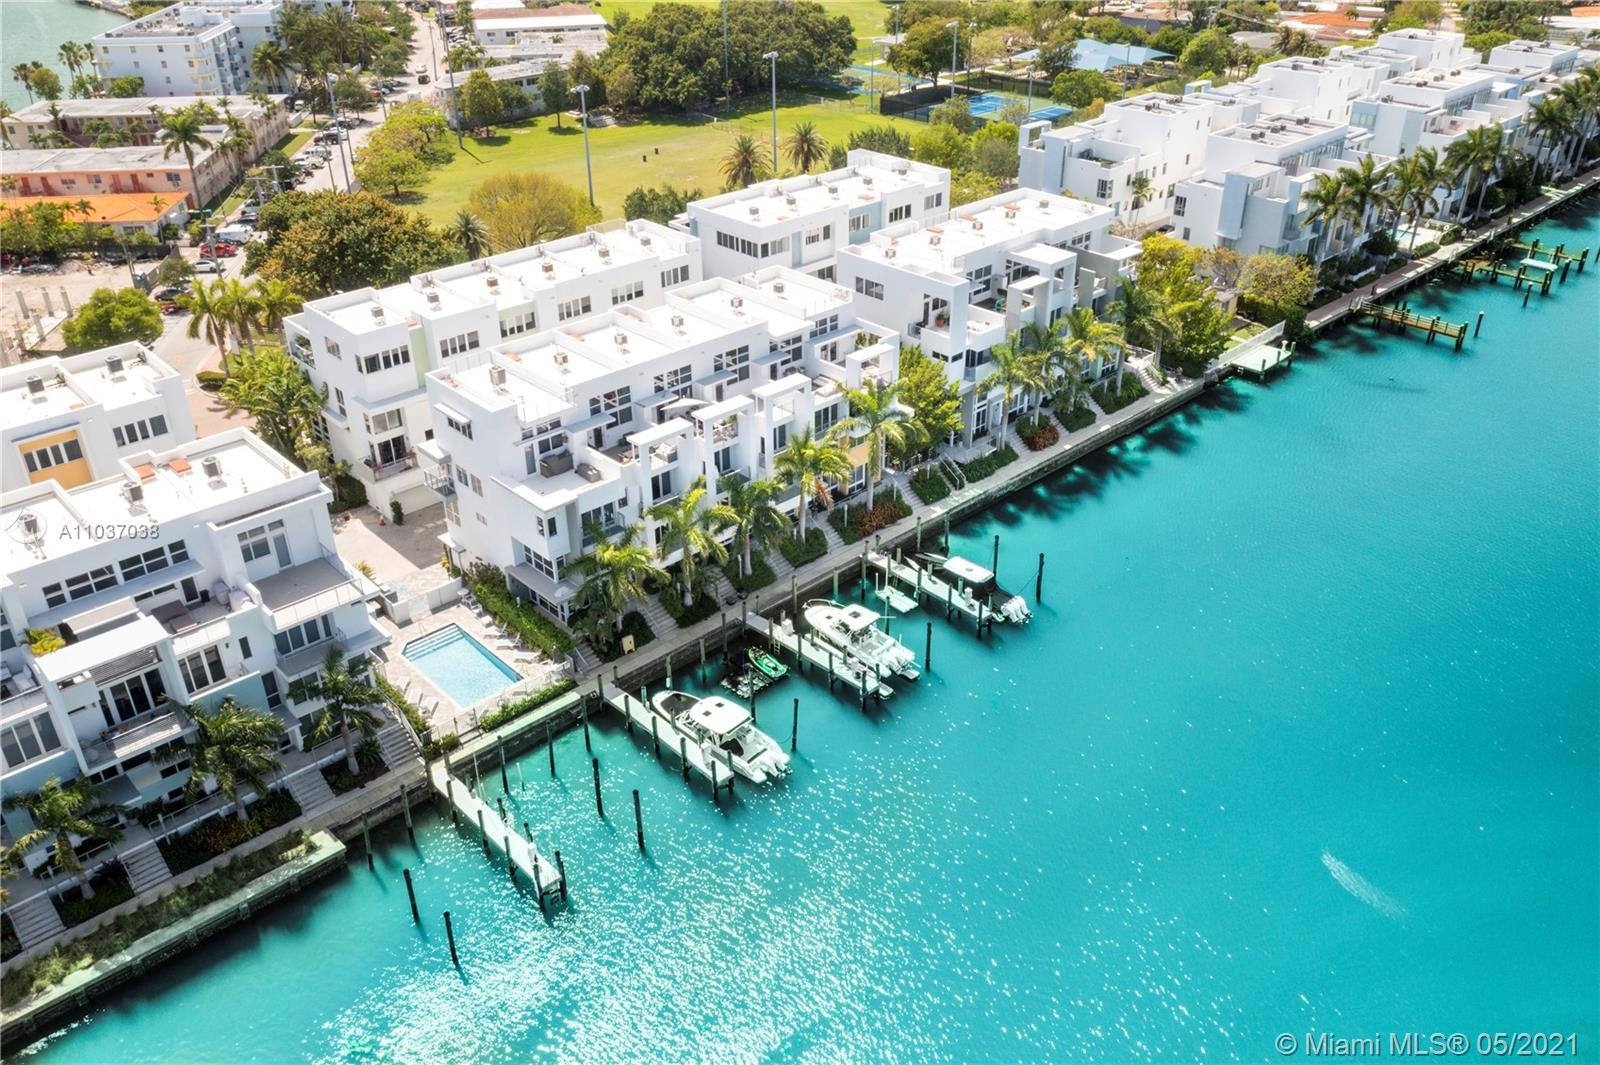 Luxury Waterfront Townhouse located in gated waterfront community of Iris on the Bay in North Miami Beach. Fully Furnished, 3 Bed plus Den/3.5 Baths, in 4 stories w/private elevator, modern kitchen, stainless steel appliances, gas cooktop, porcelain floors, double car garage w/lift for 3rd car, electric blinds, laundry room. Waterfront rooftop terrace w/TV, full outdoor kitchen, bbq & bar w/water views. Very low HOA fees. Quiet residential area. Across fully renovated Fairway Park w/tennis & basketball courts, soccer field, kids playground. Normandy Shores Golf just steps away. Walk to the Beach, supermarkets & Zagat rated restaurants. A MUST SEE!  This unit DOES NOT come with deeded boat dock but buyer can lease boat dock available for long term. Easy to show.